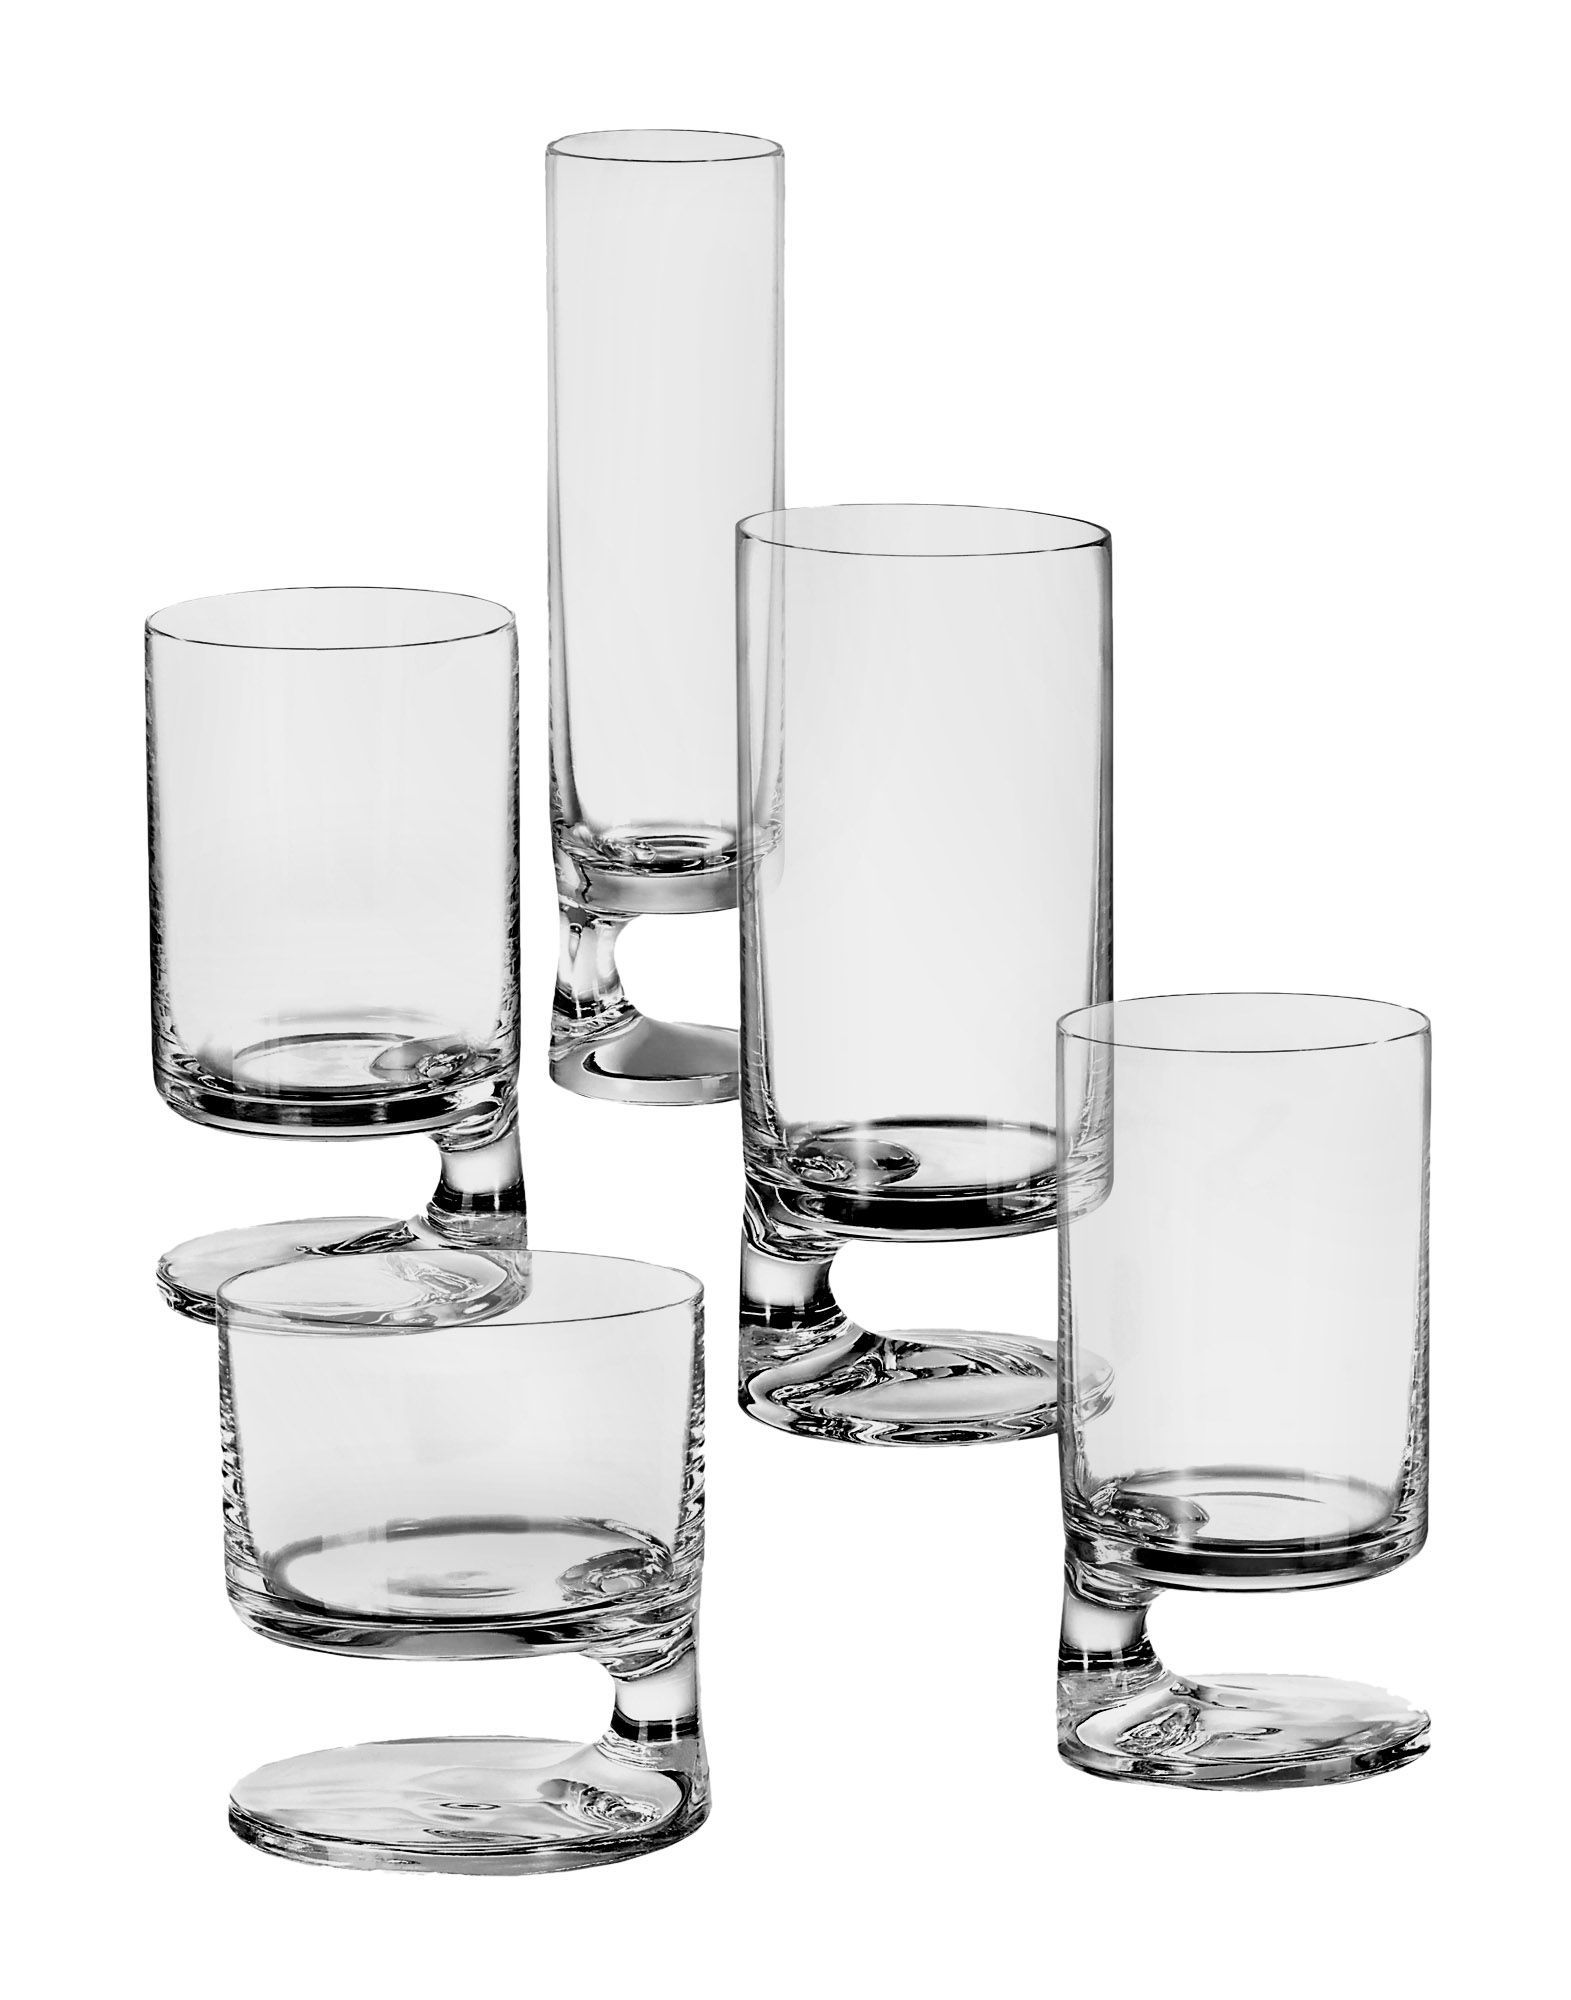 10 Underrated Glassware Sets By Iconic Designers That You Can Buy Right Now Sight Unseen Glassware Design Unique Glassware Smoked Glass